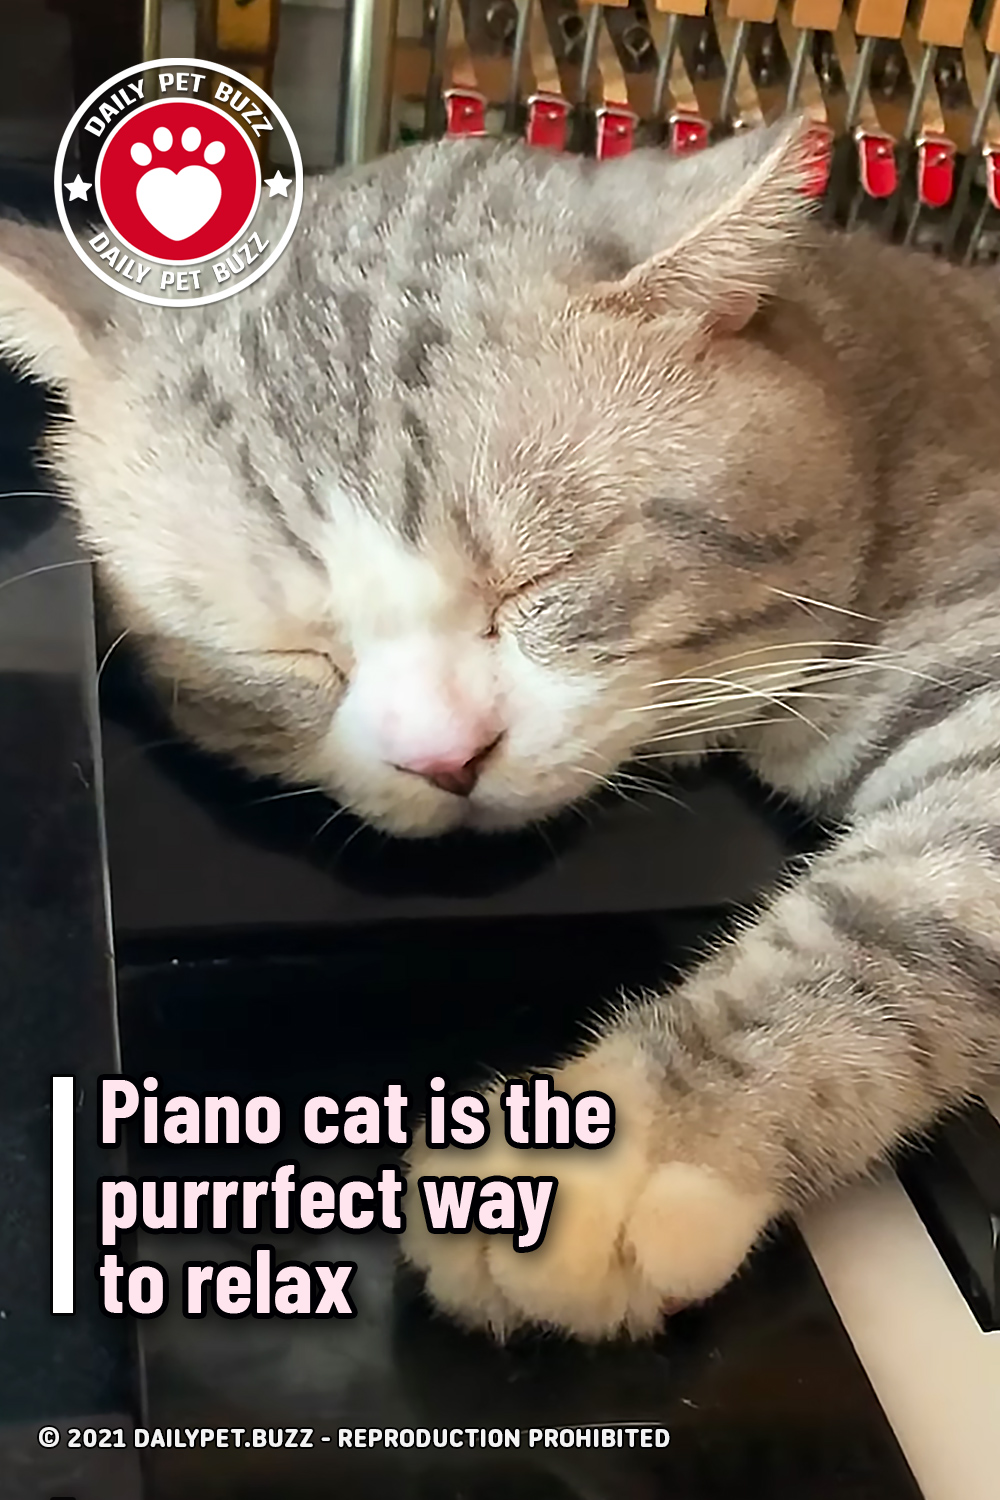 Piano cat is the purrrfect way to relax